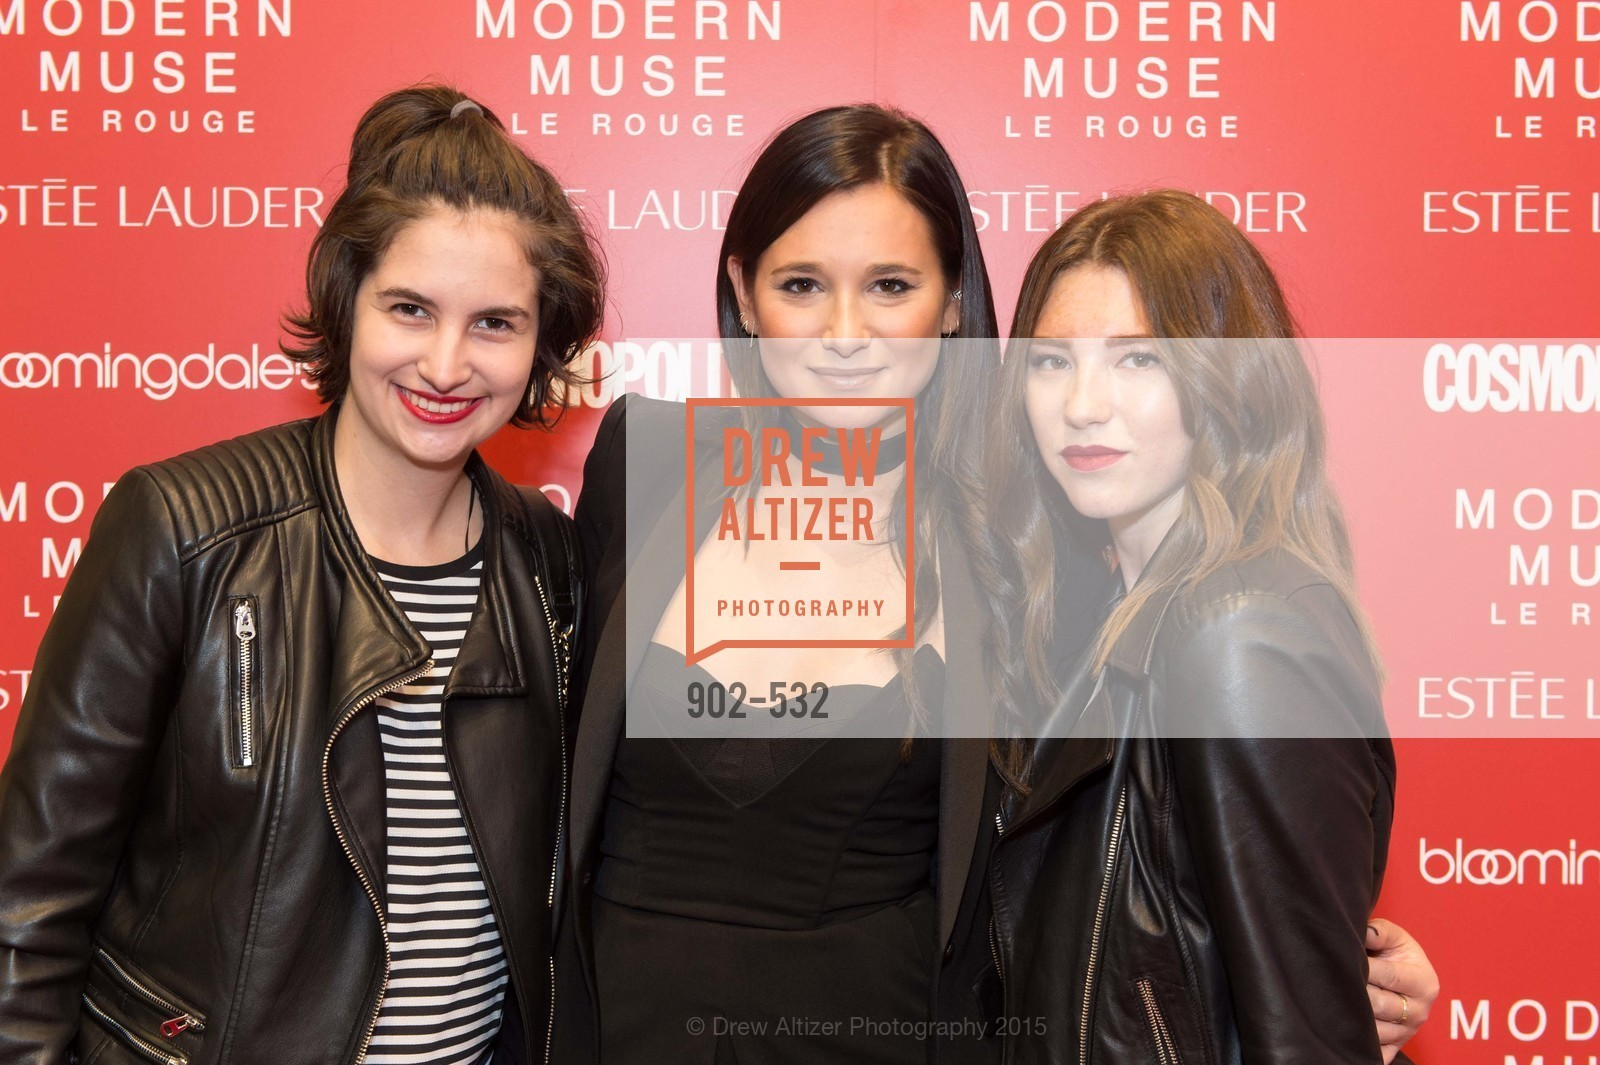 Step and Repeat, Modern Muse Le Rouge Fragrance Launch, November 14th, 2015, Photo,Drew Altizer, Drew Altizer Photography, full-service event agency, private events, San Francisco photographer, photographer California